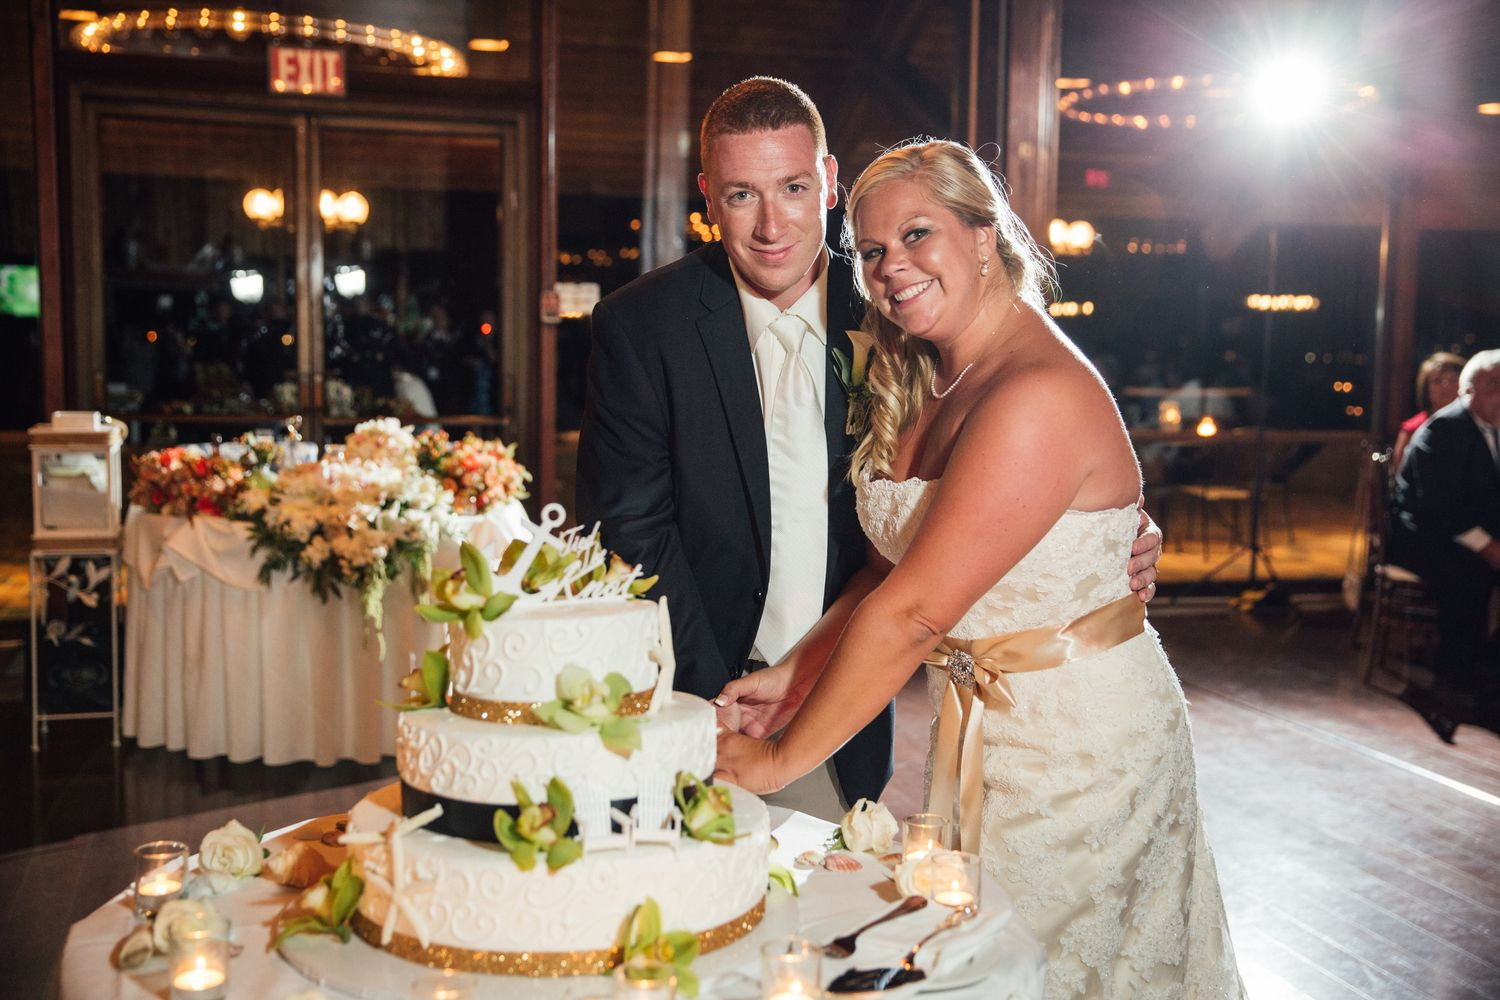 Cake cutting at 360 East at Montauk Downs See the whole wedding here http://www.mattstallonephotography.com/recent-stories/2015/1/13/360-east-at-montauk-downs-wedding-photography